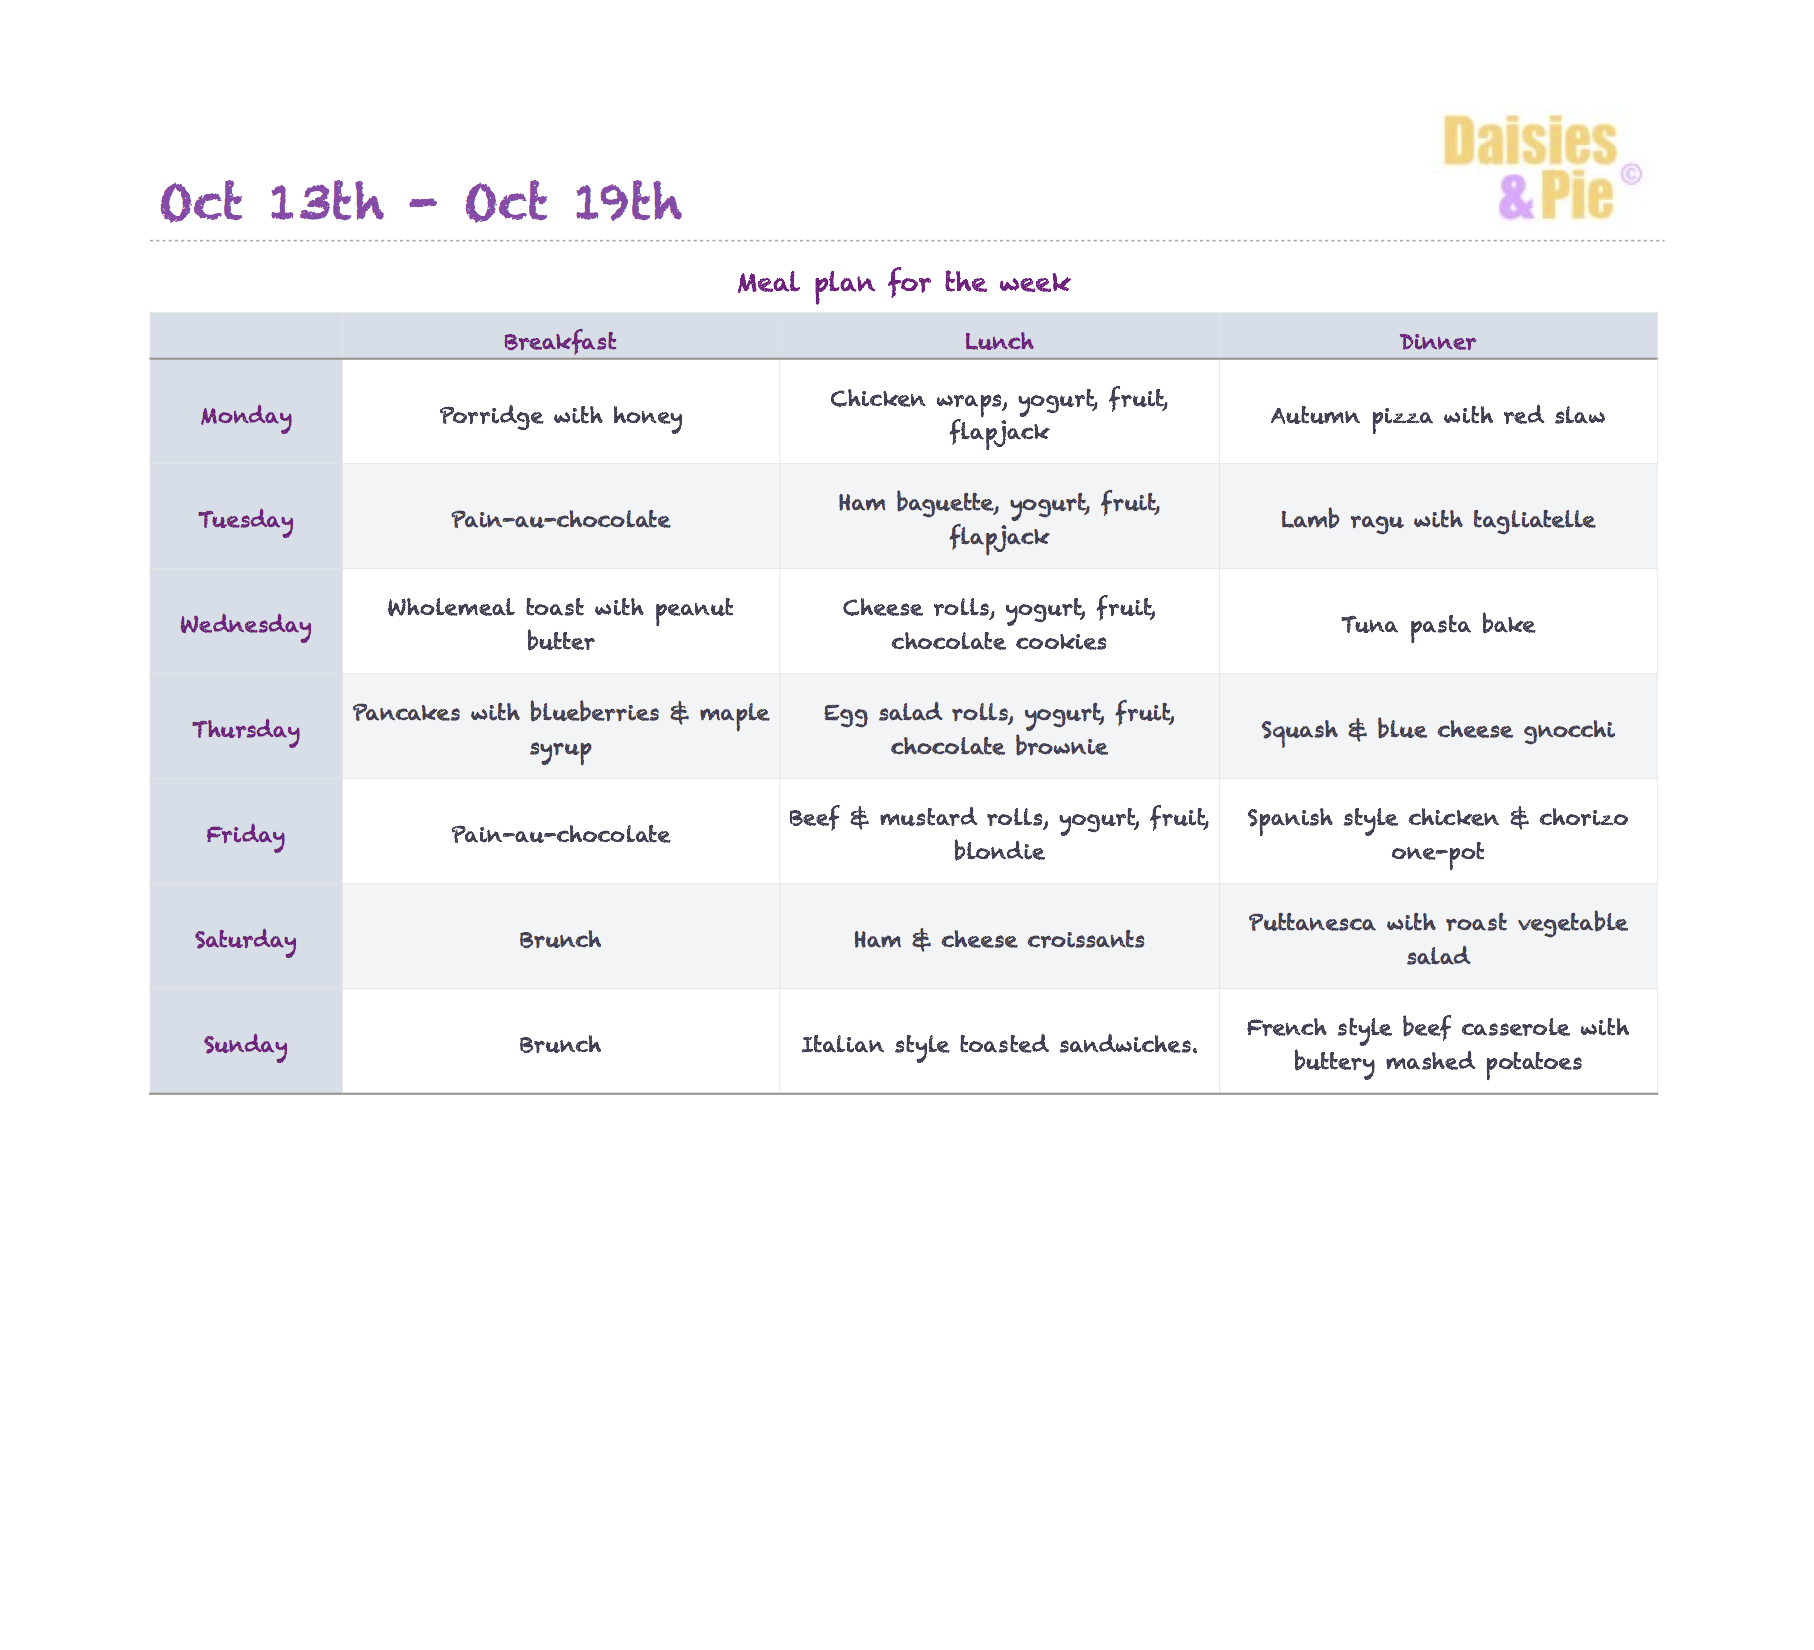 family meal plan, autumn meal plan, ideas for autumn recipes, easy meal planning tips, meal planning ideas, how to meal plan for a family, meal planning recipes, printable meal plan, daisies and pie